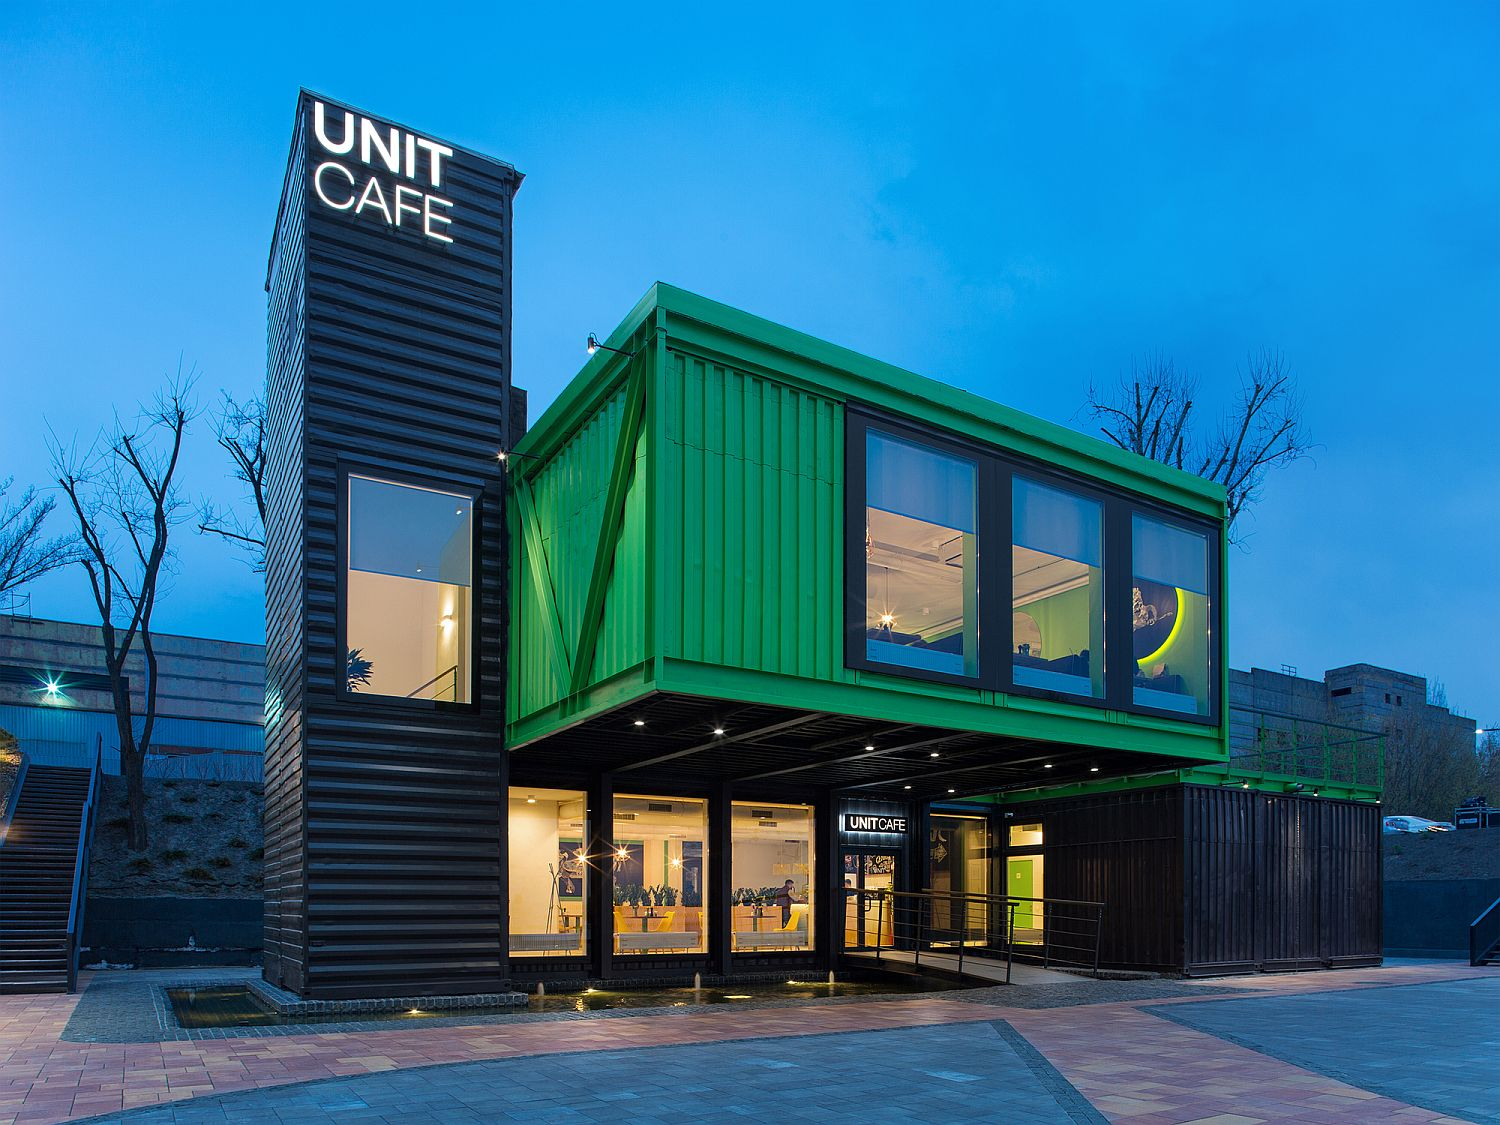 Unit Cafe in Kiev built using shipping containers